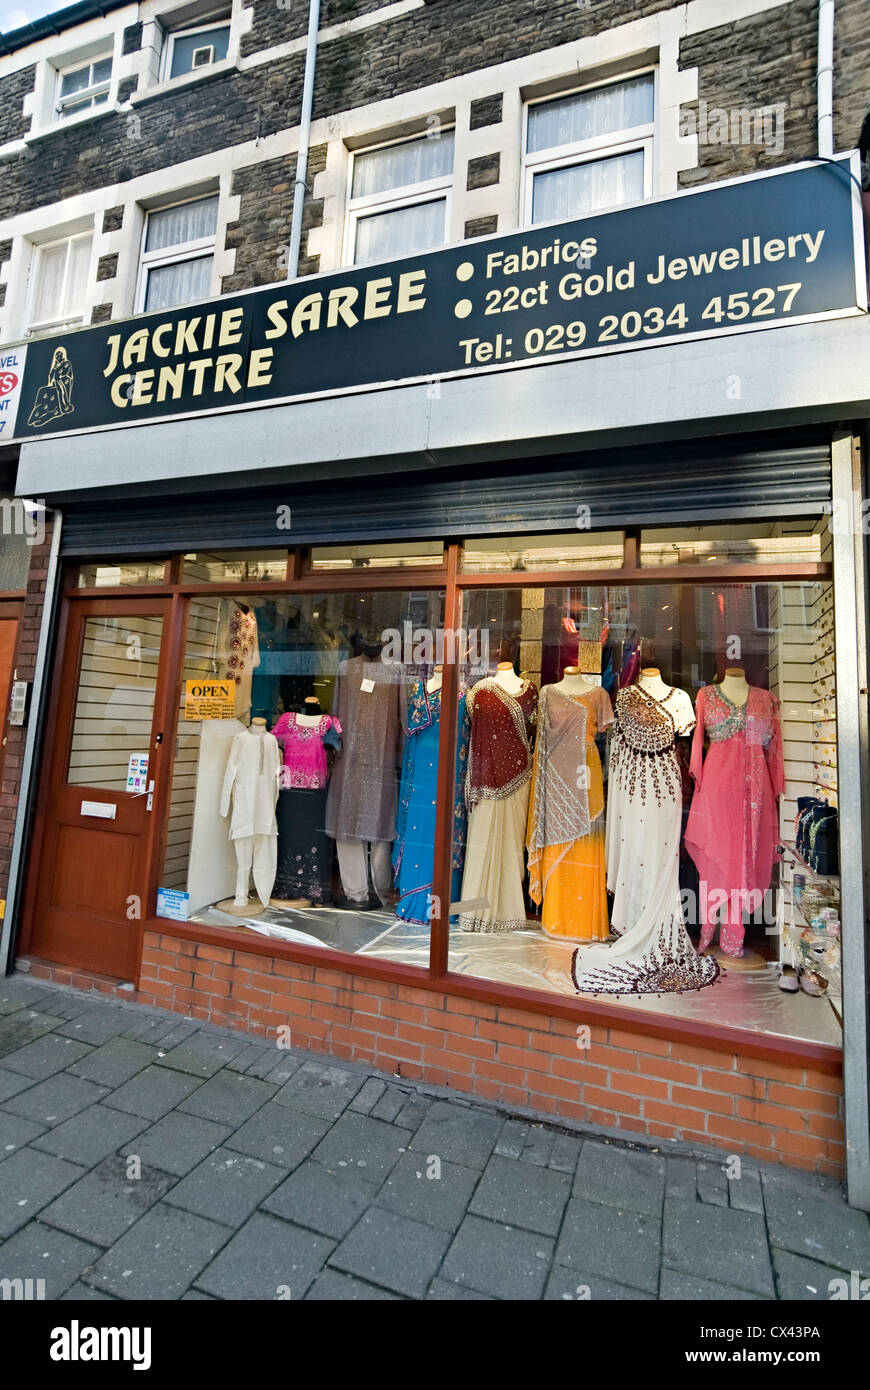 Jackie saree centre Cardiff Indian asian clothes shop Stock Photo Royalty Free Image 50492578 ...